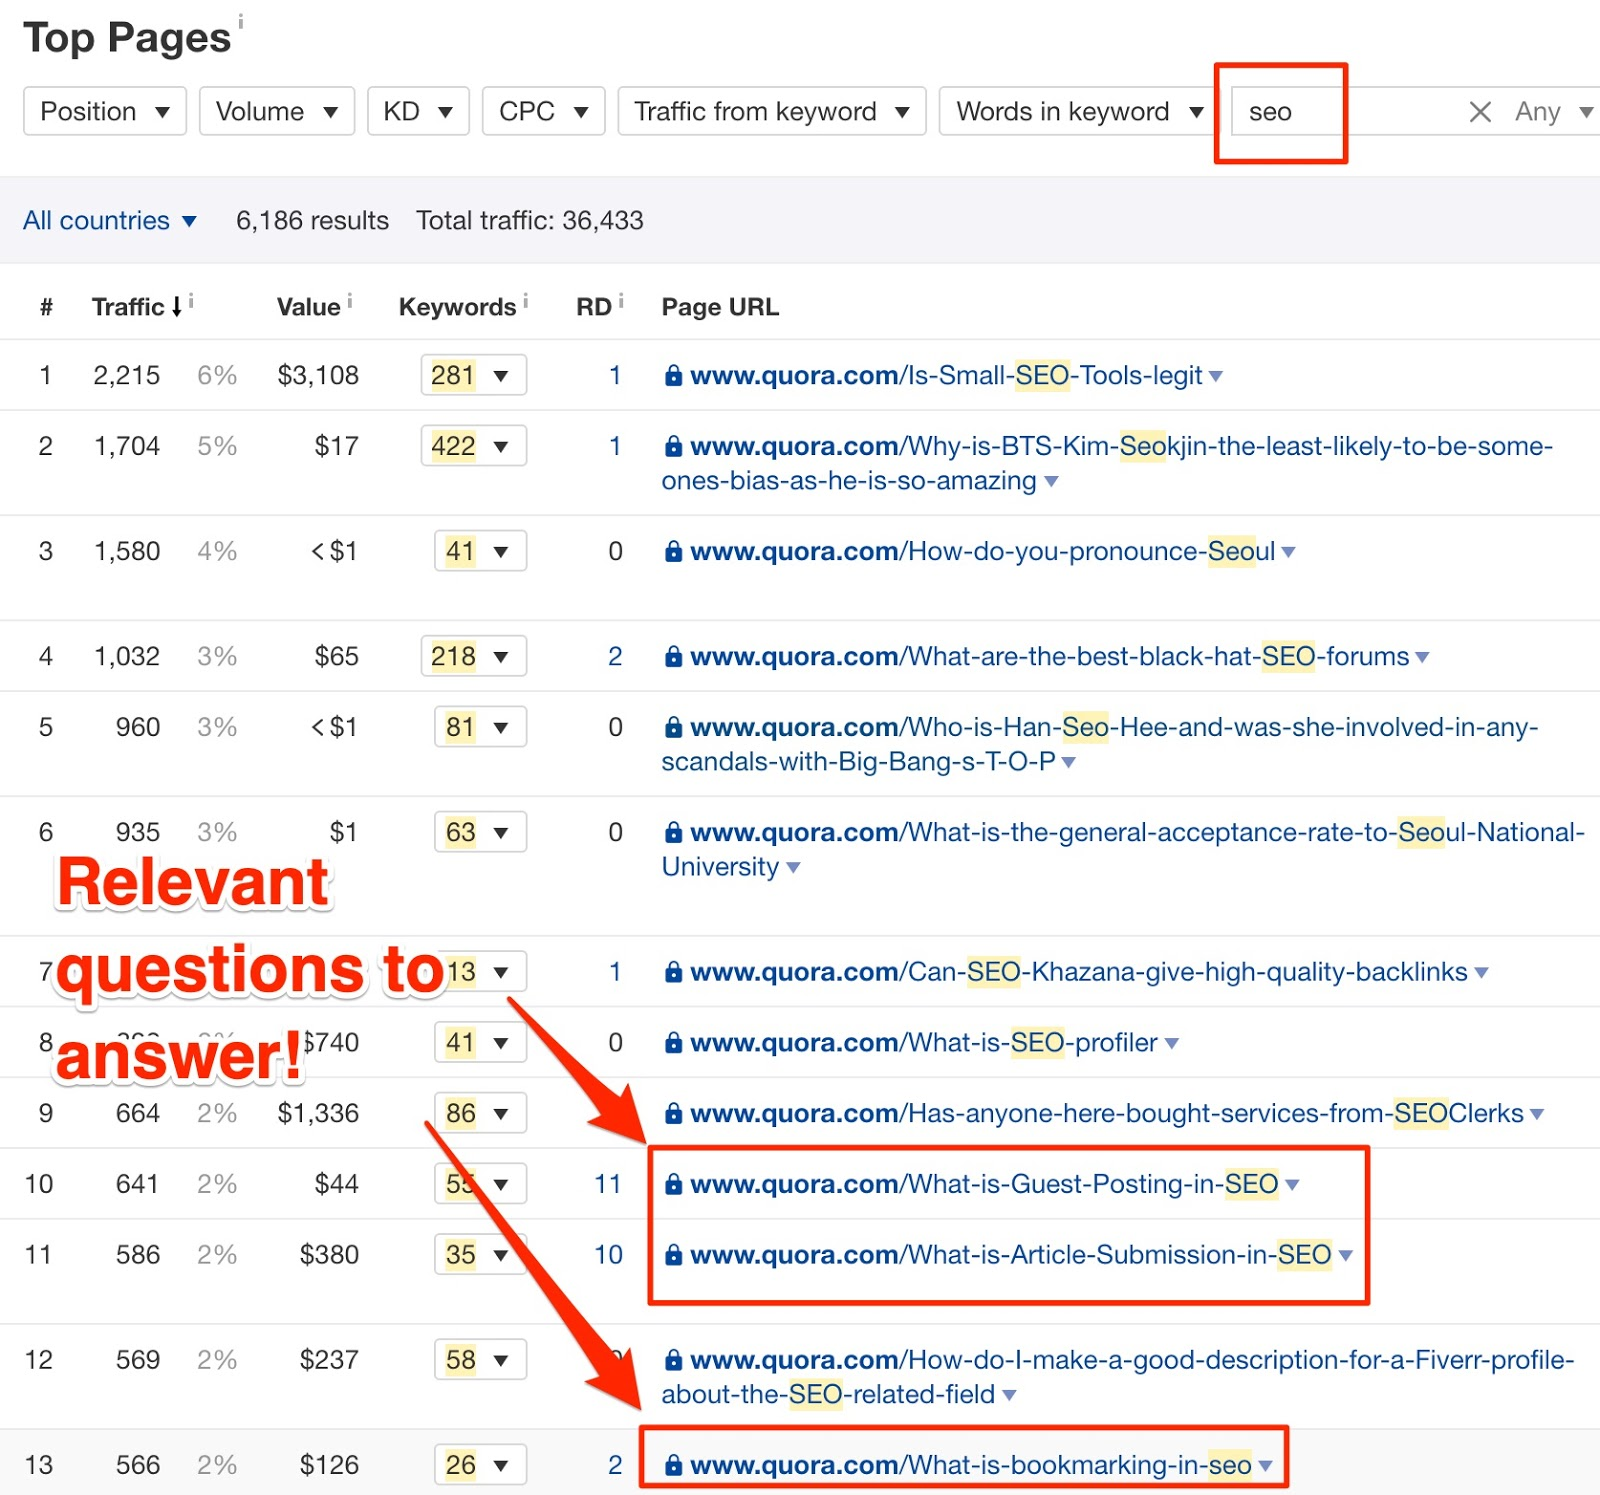 quora top pages 3